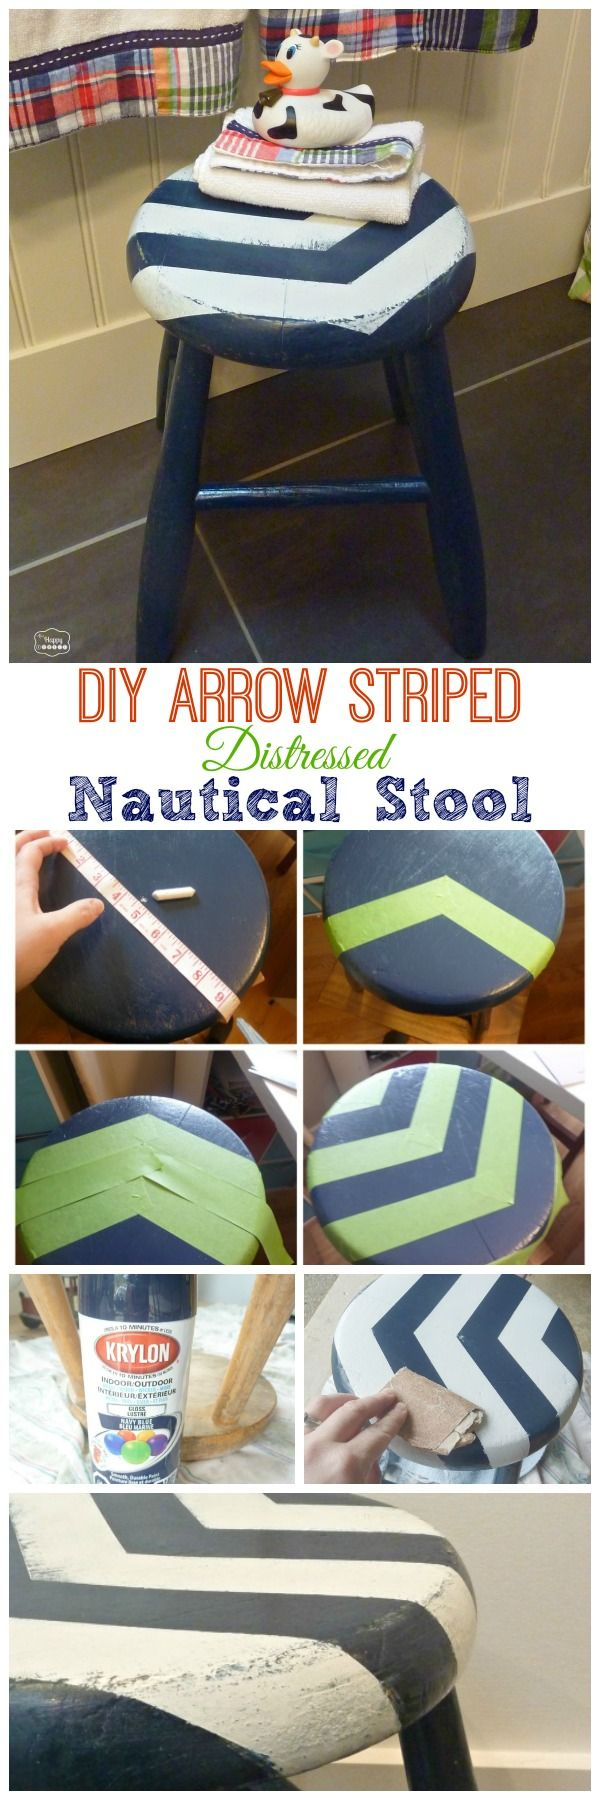 DIY Arrow Striped Distressed Nautical Stool for our Boys Nautical Theme Bathroom - CuTe!!